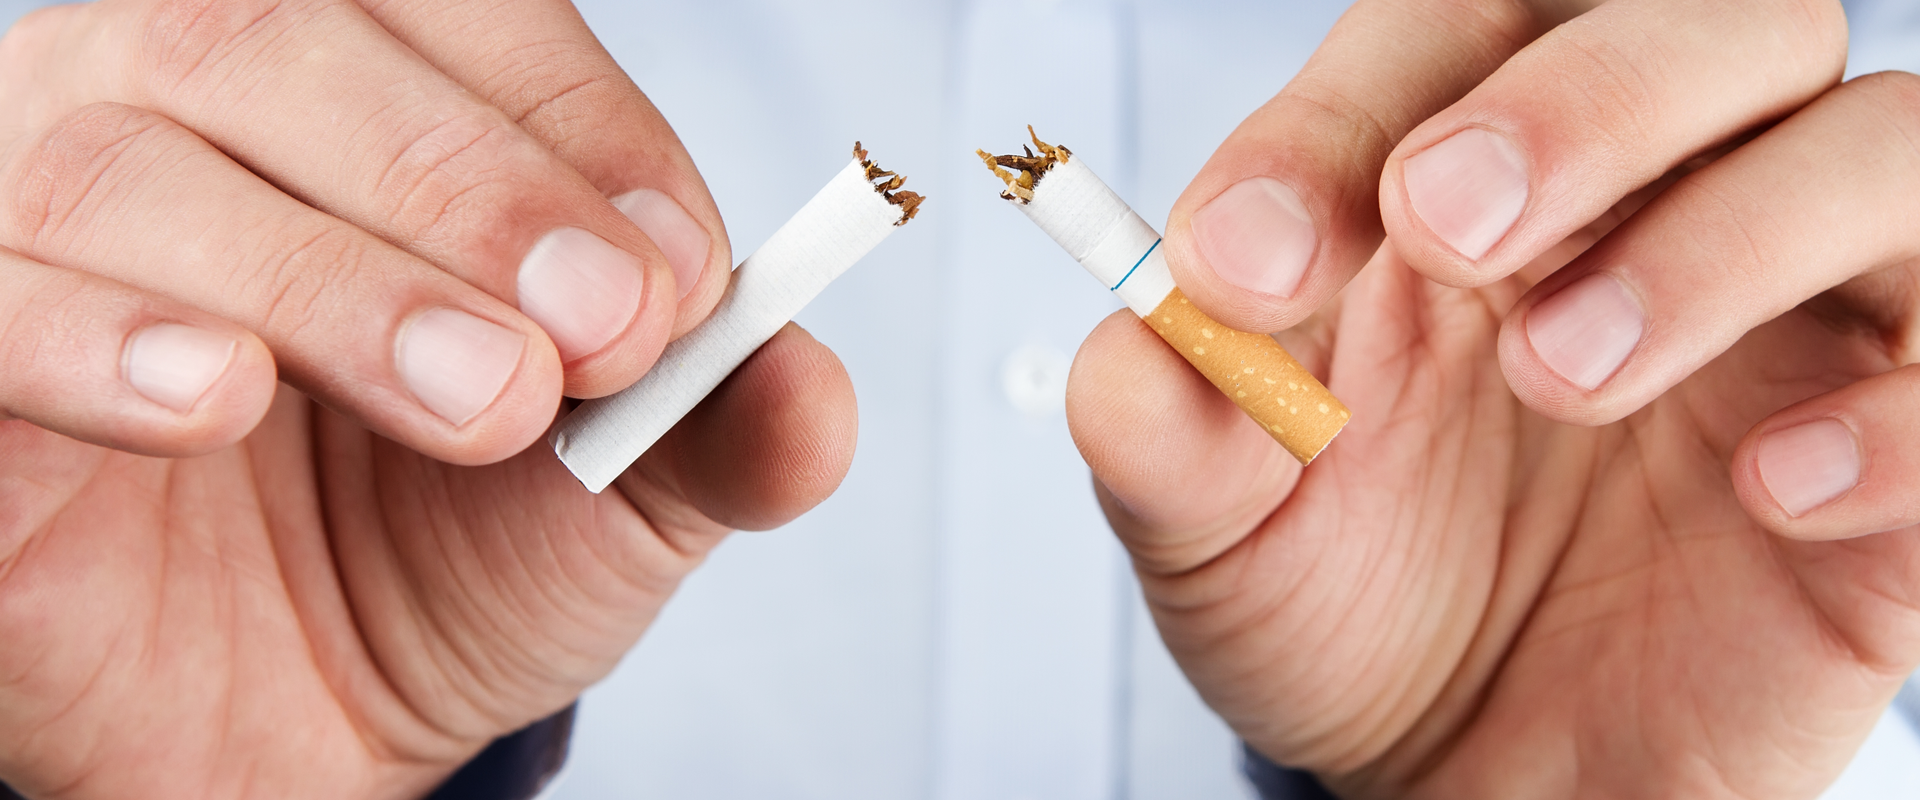 7 Ways Quitting Smoking Can Benefit Your Health